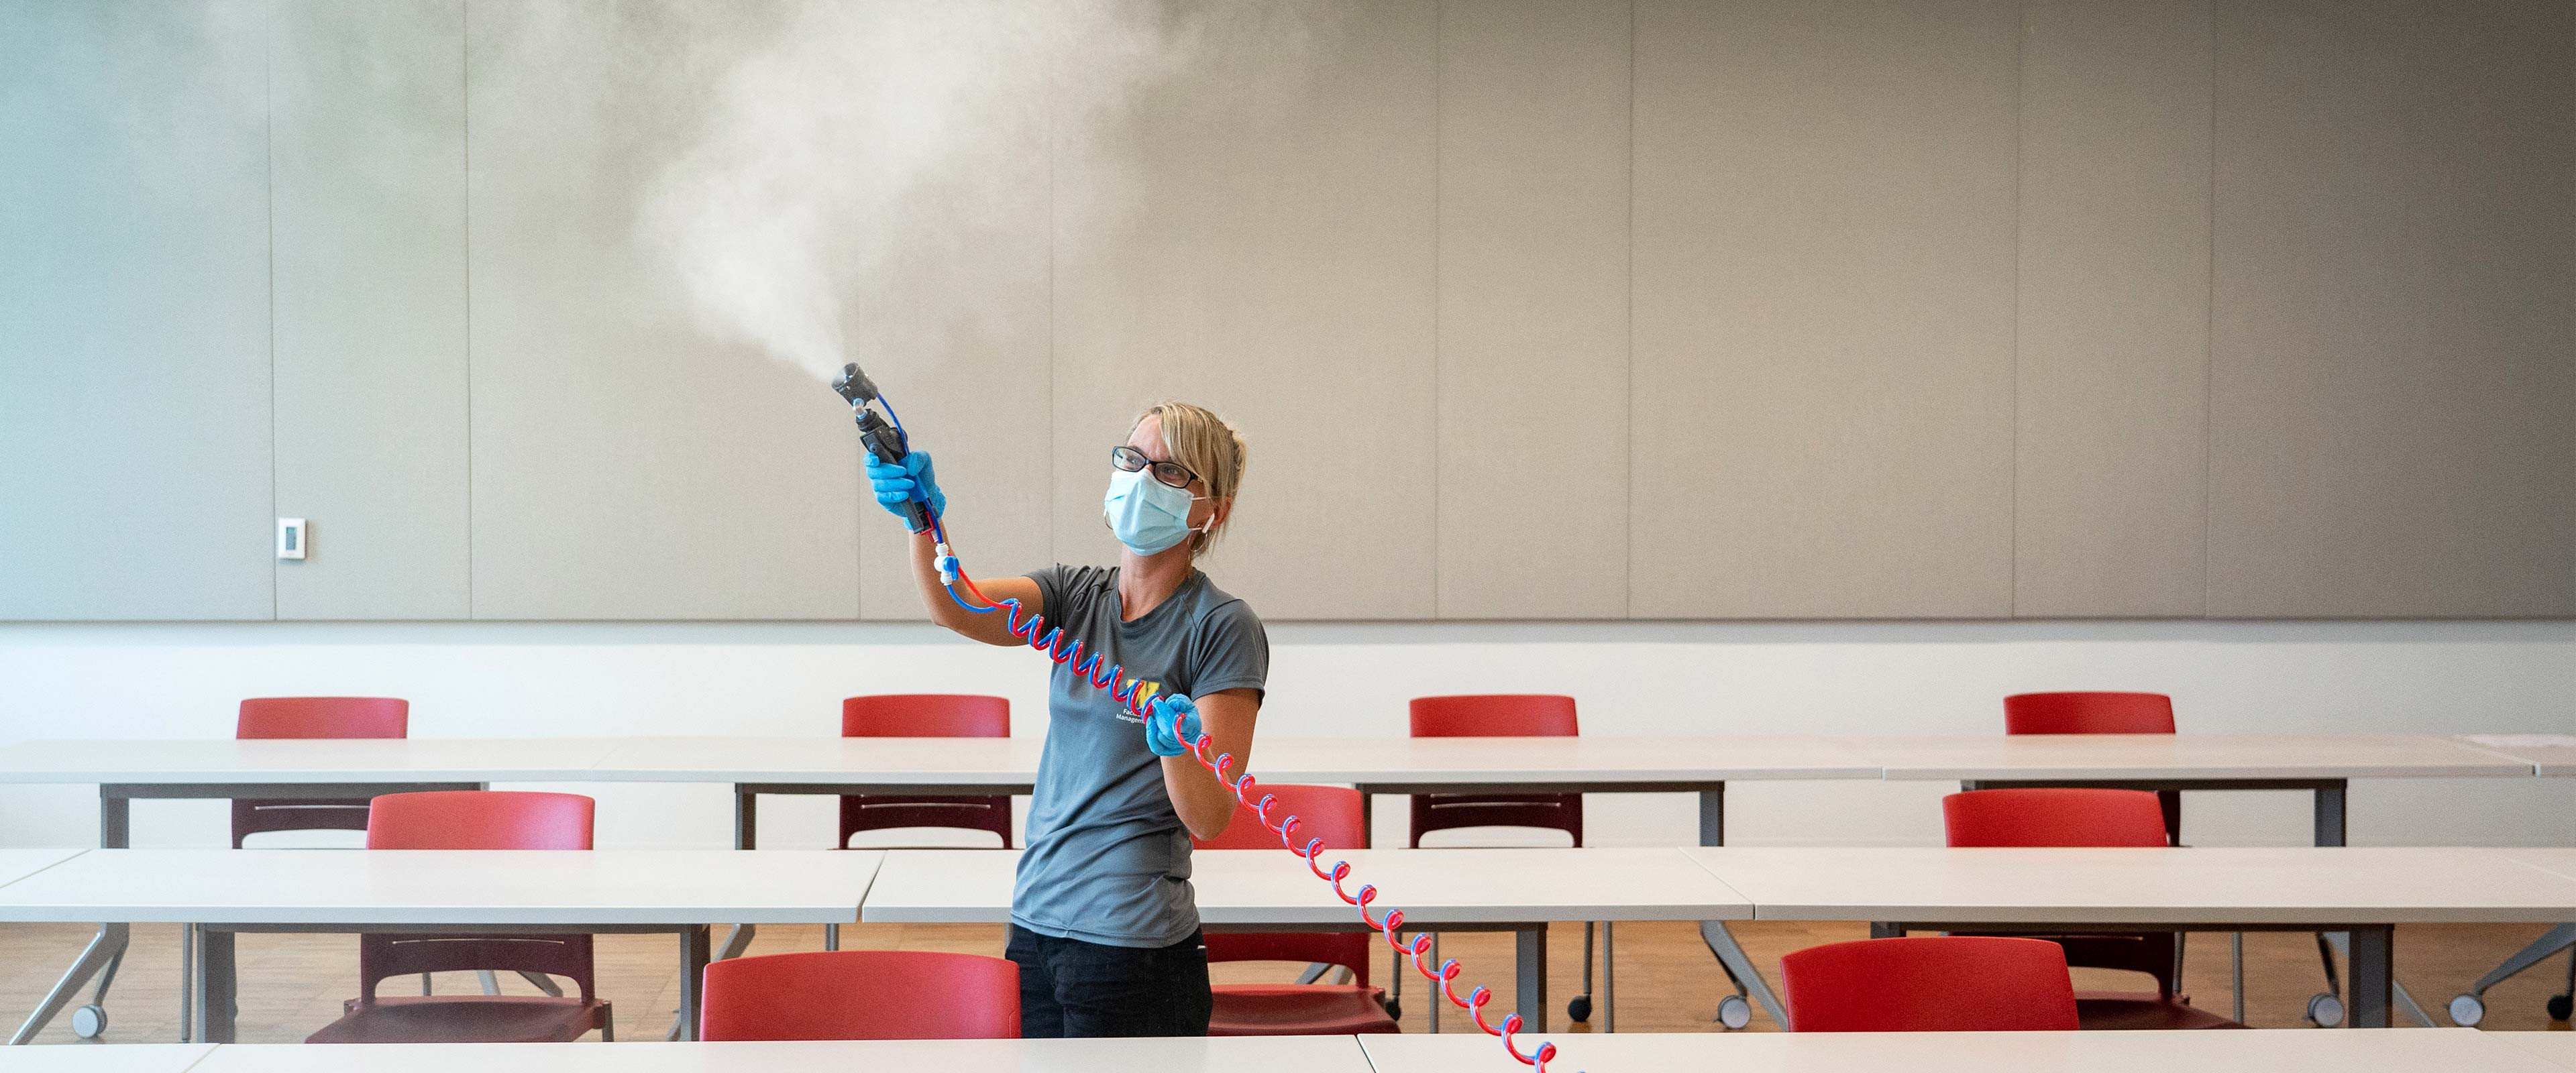 A WMU employee spraying cleaning disinfectant into the air in a classroom.